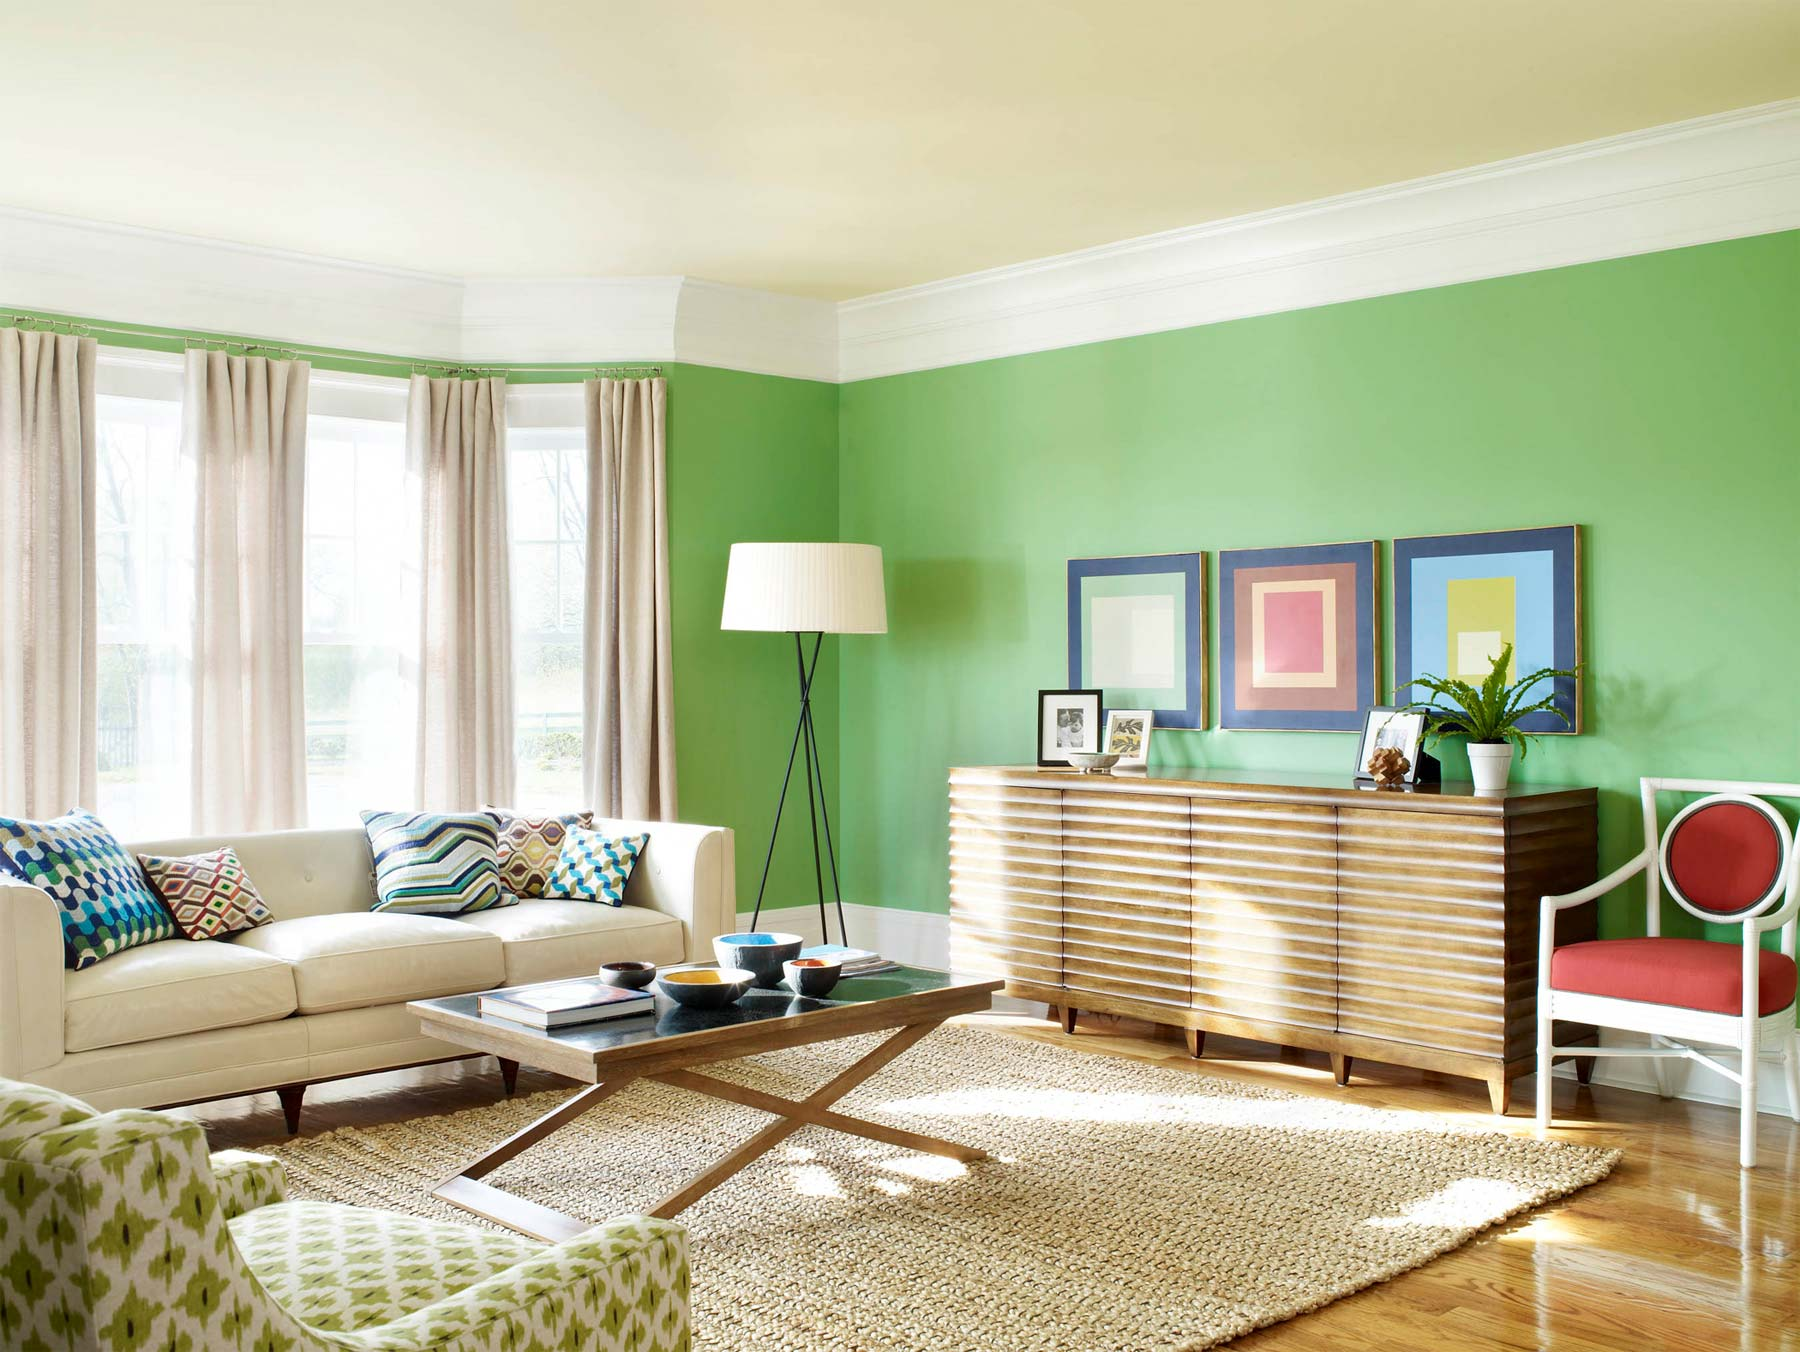 Innovative interior design tips my decorative Paint colors interior